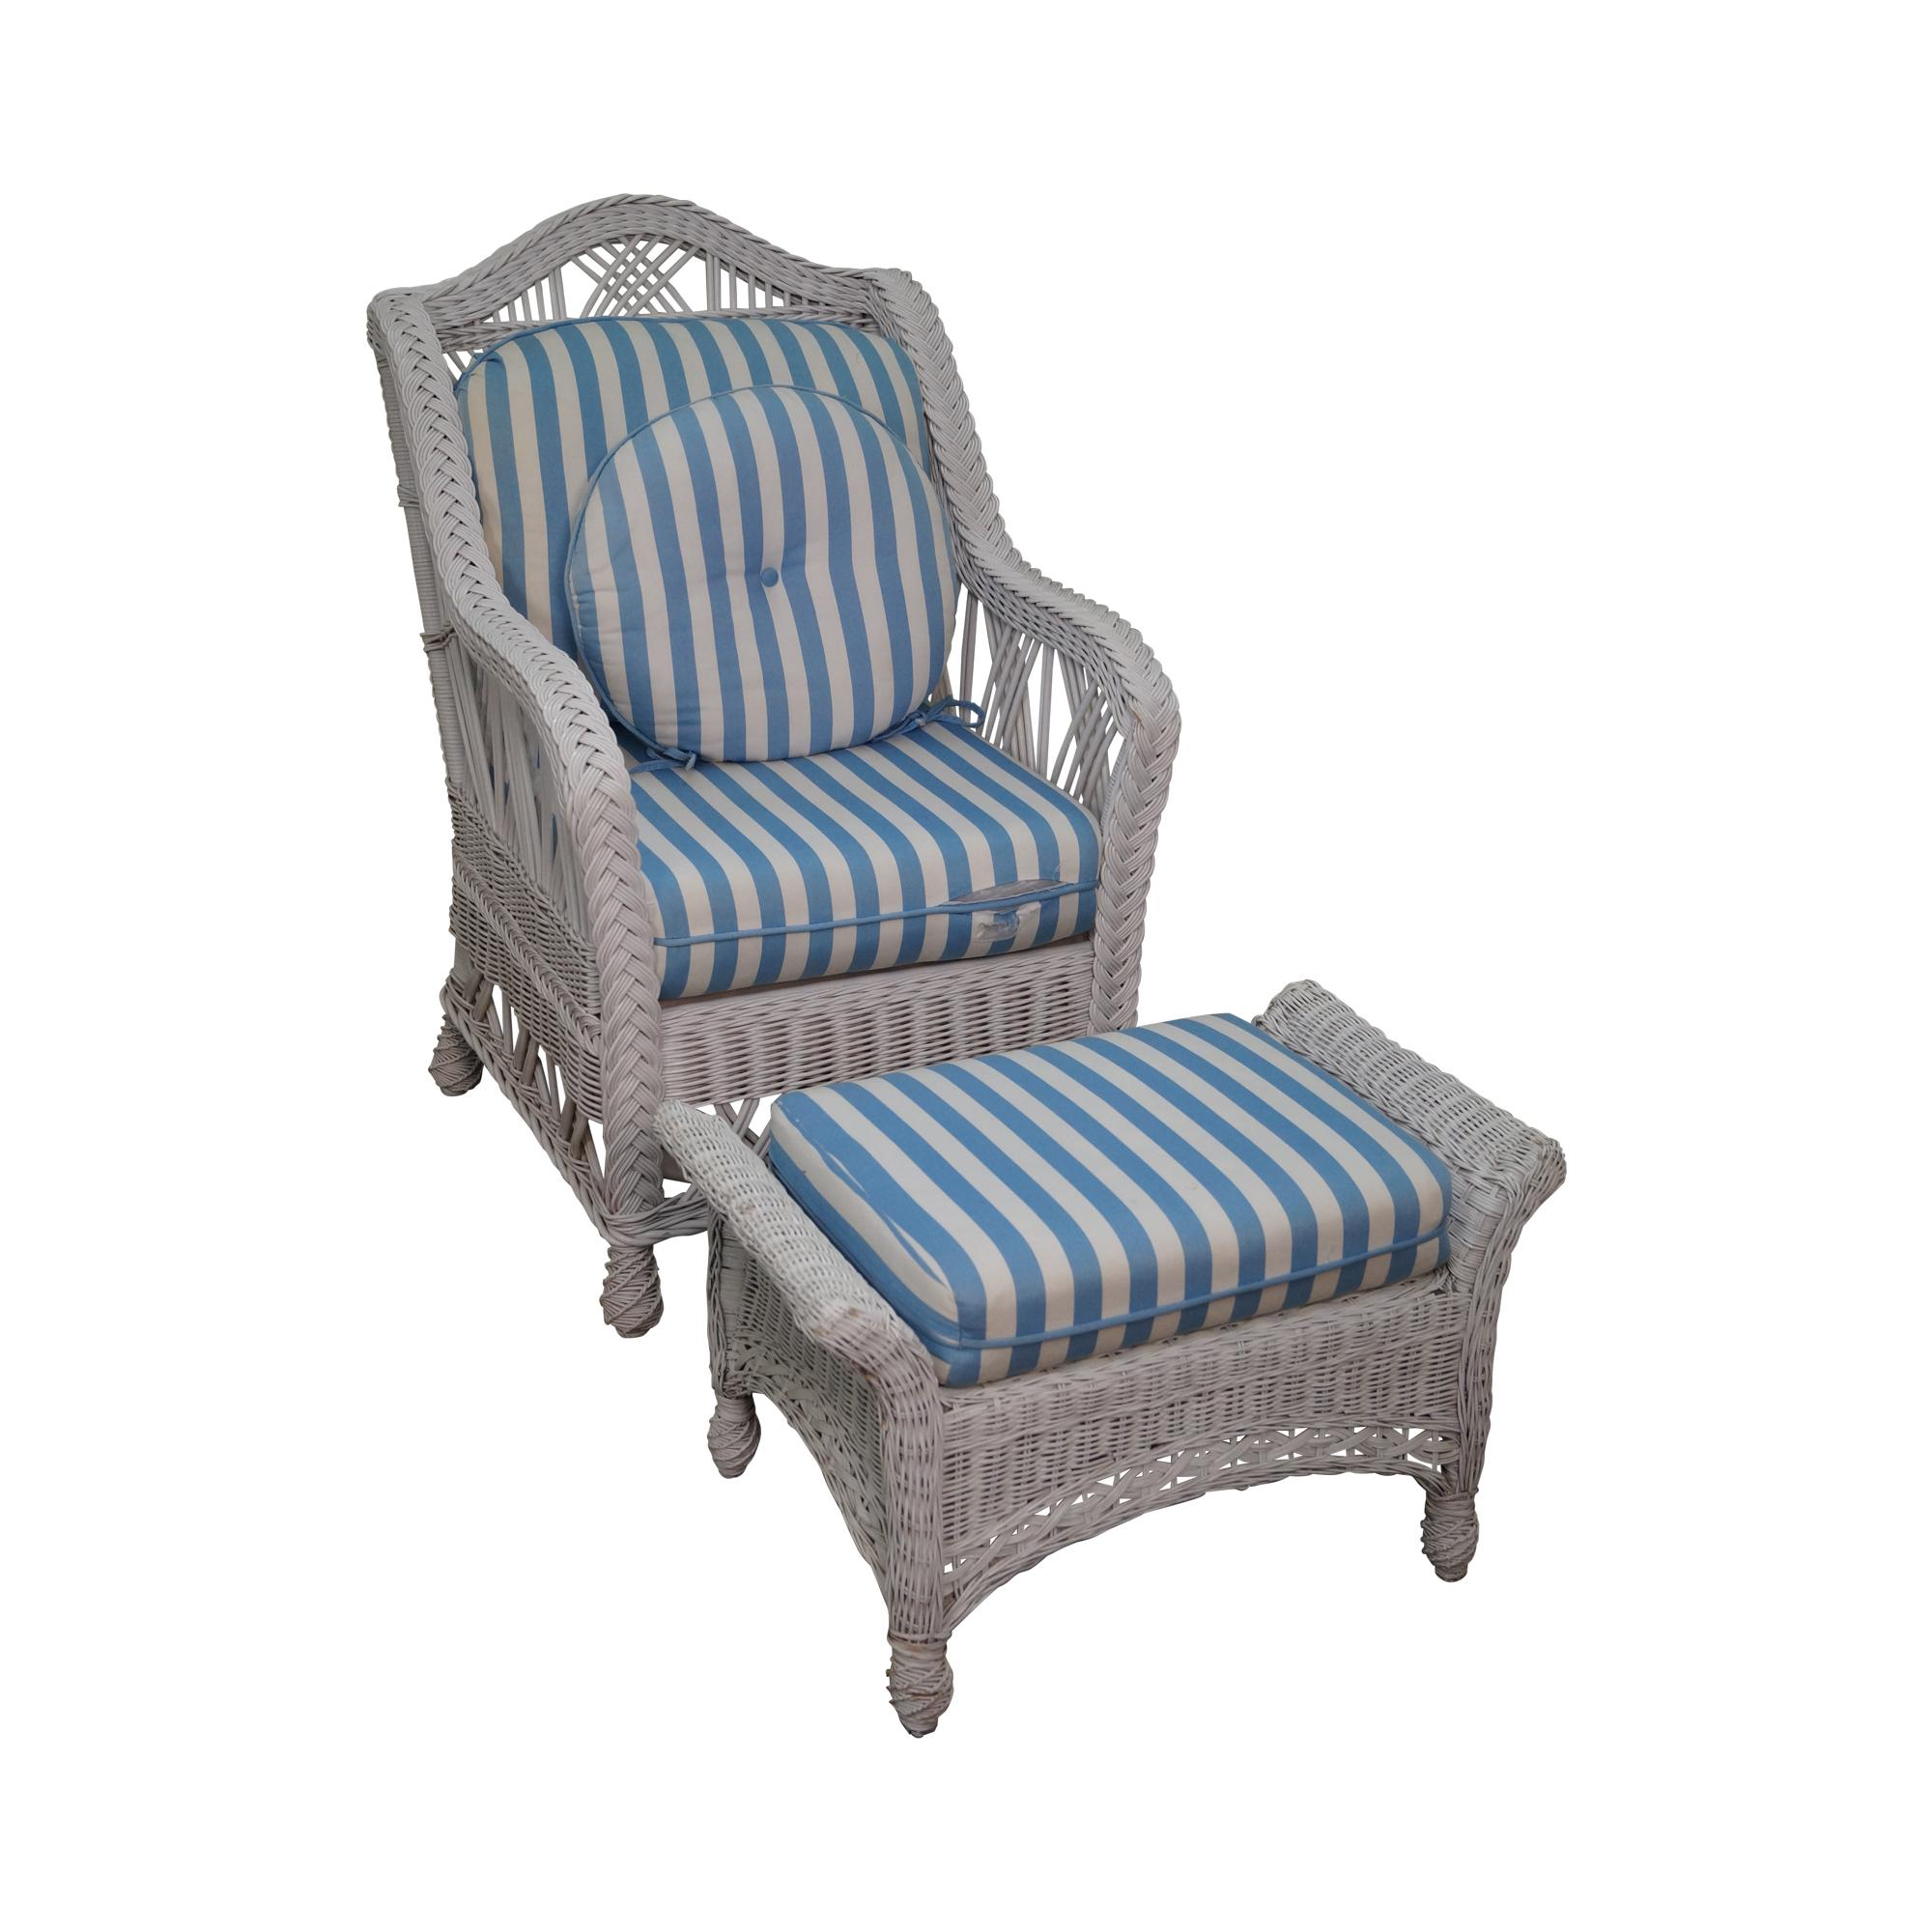 wicker chairs with ottoman underneath christmas chair covers australia victorian style white lounge